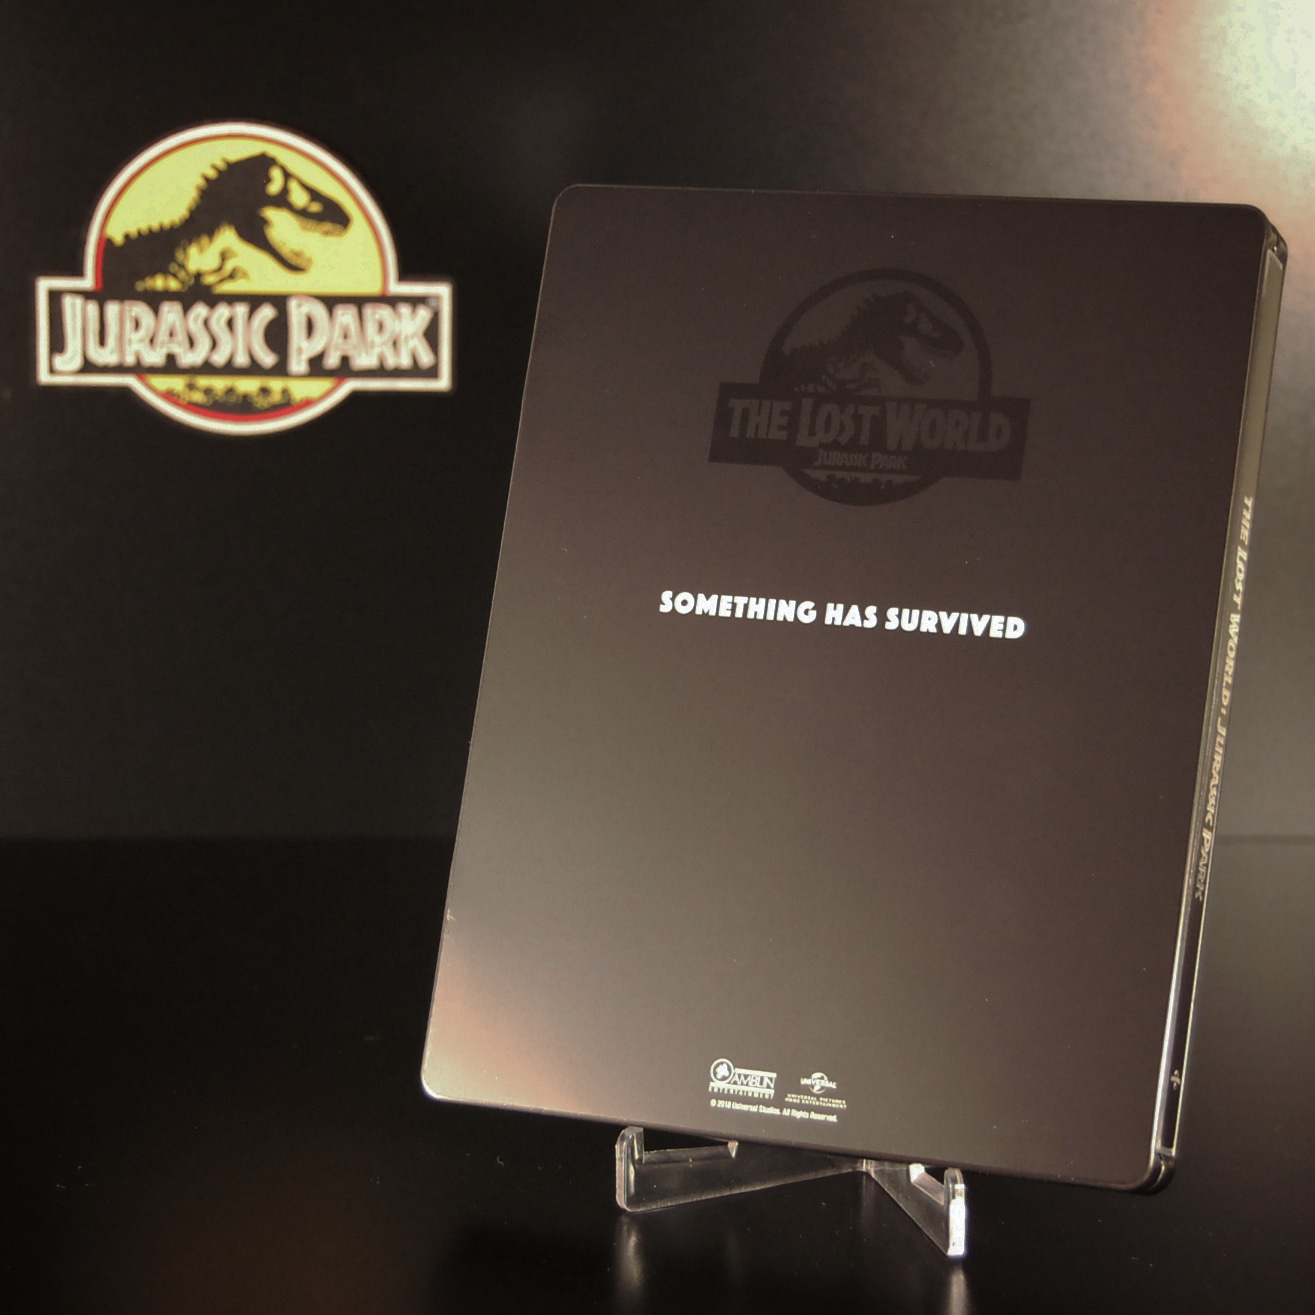 The Lost World steelbook 2